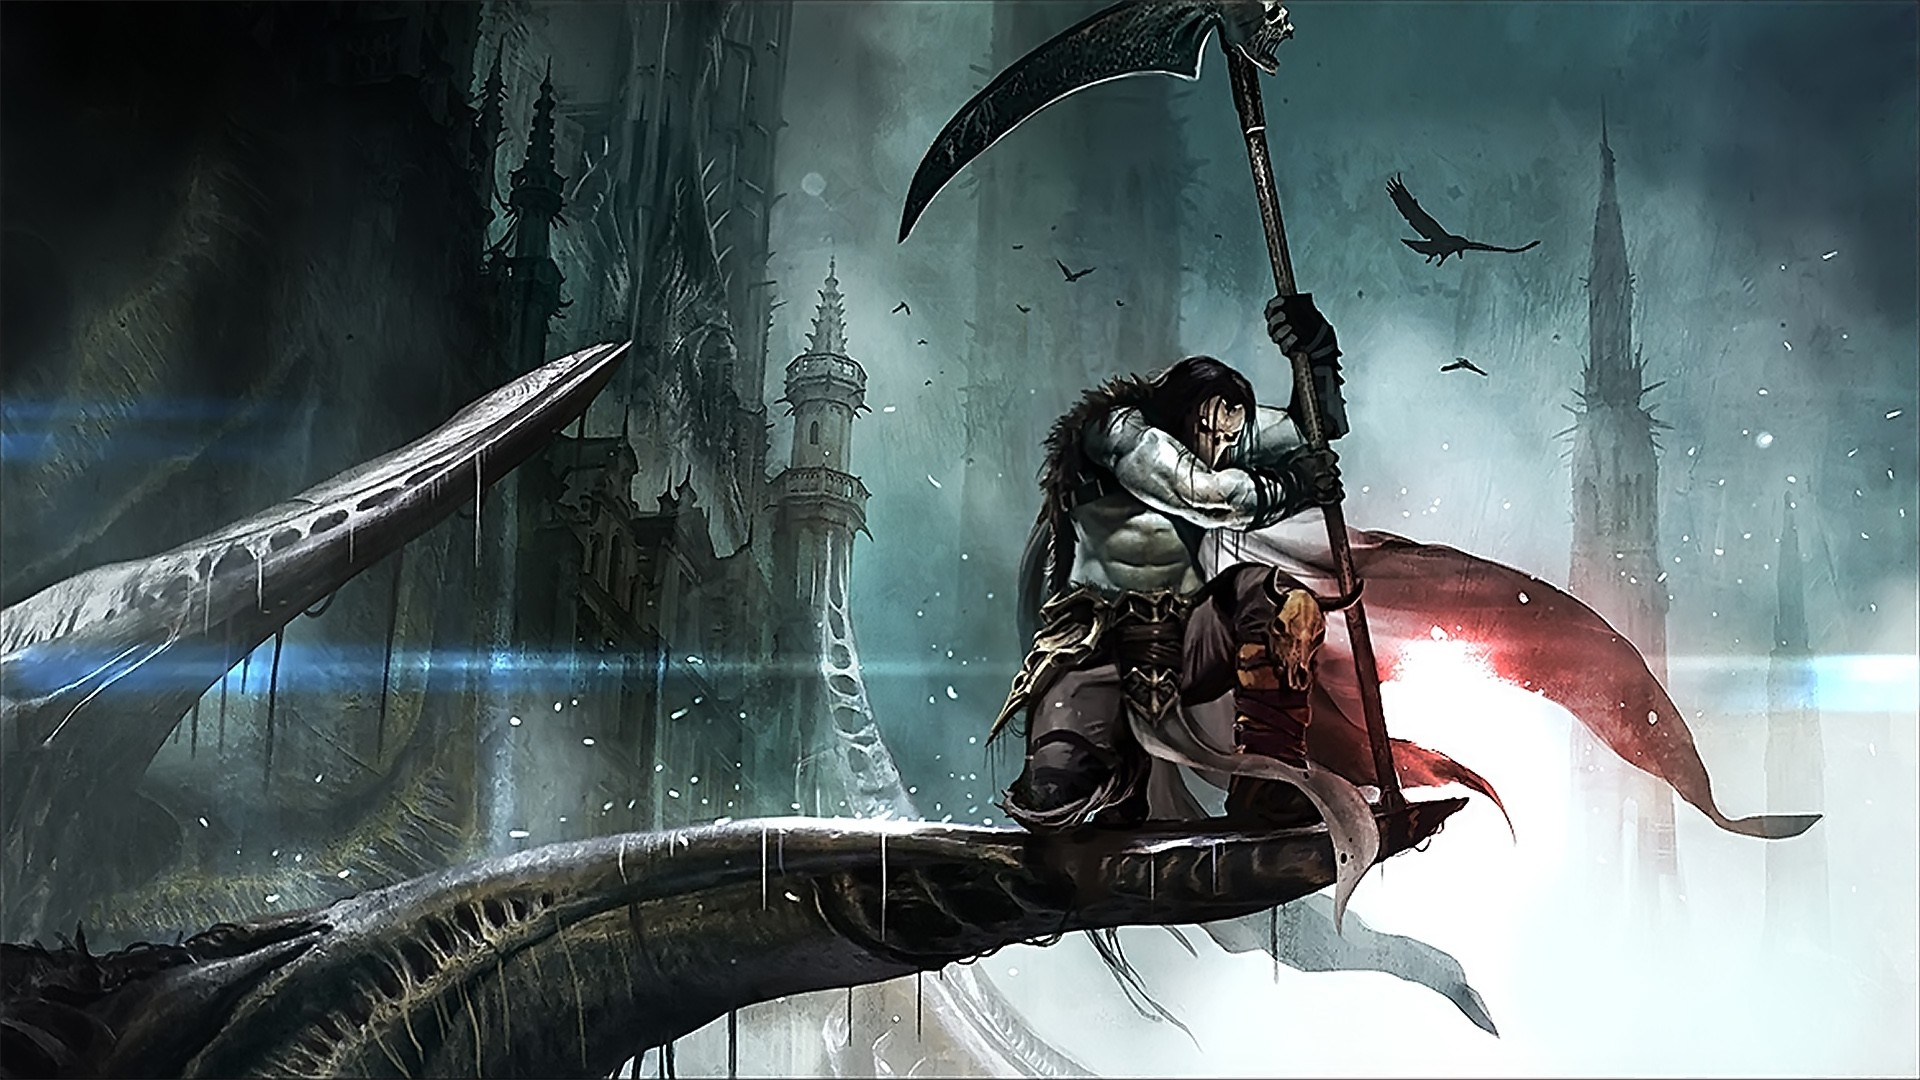 51 Darksiders II Wallpapers Backgrounds - Wallpaper Abyss